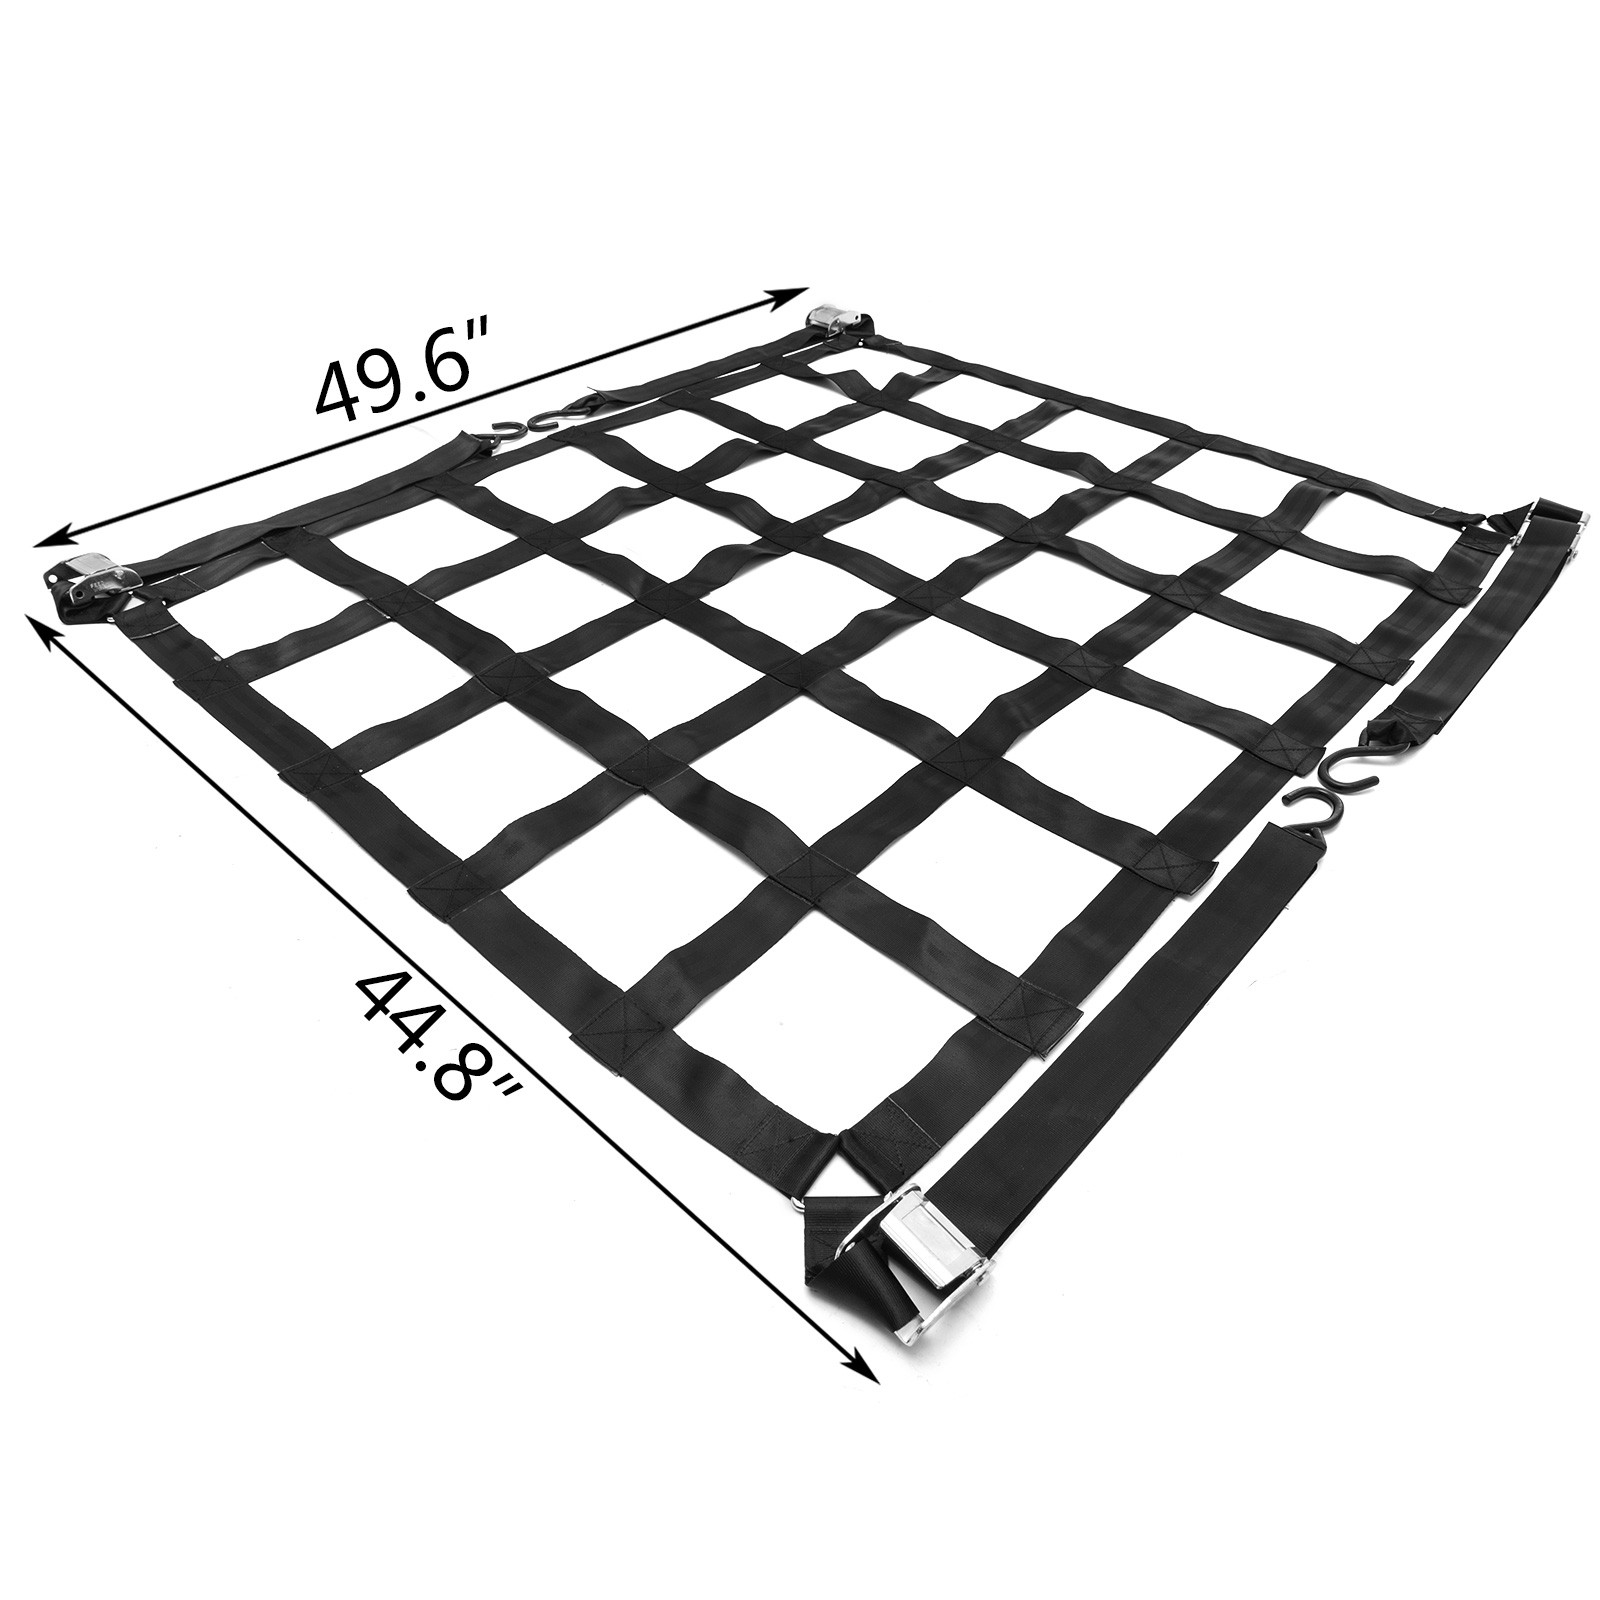 Truck Bed Cargo Net Safety Web 500kg//1100lb 2T//4400lb High Strength NEWEST